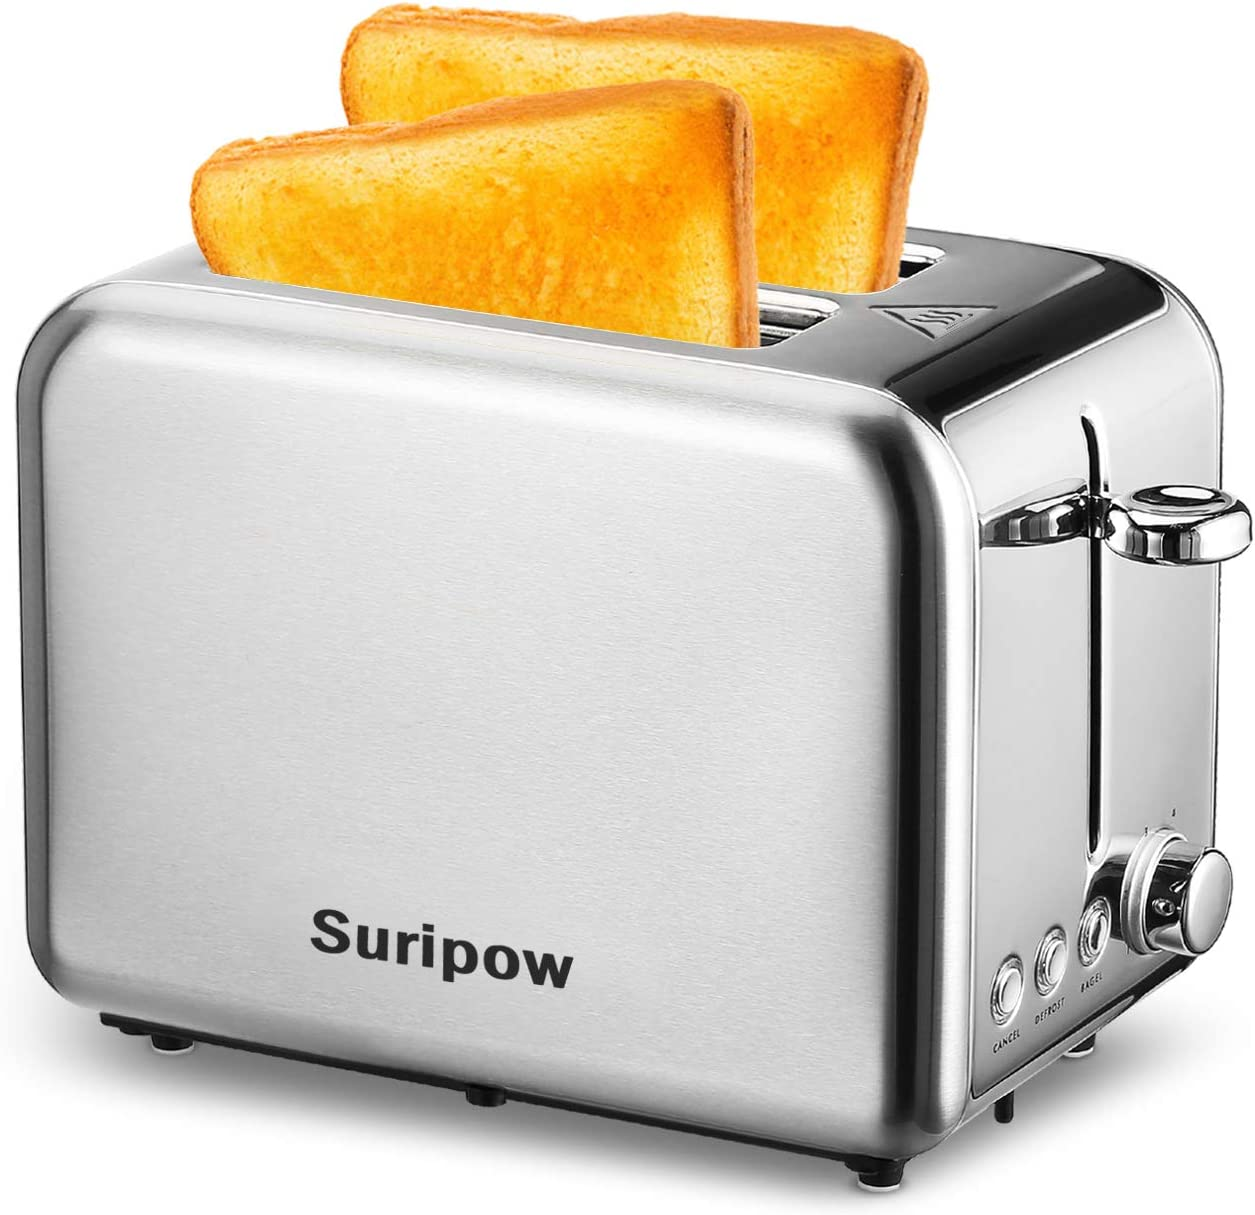 Toaster 2 Slice ,Suripow Stainless Steel Toaster 2 Slice Best Rated Prime Wide Slots Toasters 6 Shade Settings with Removable Crumb Tray for Bread, Bagel, Cancel/Defrost/Bagel Function, 900W